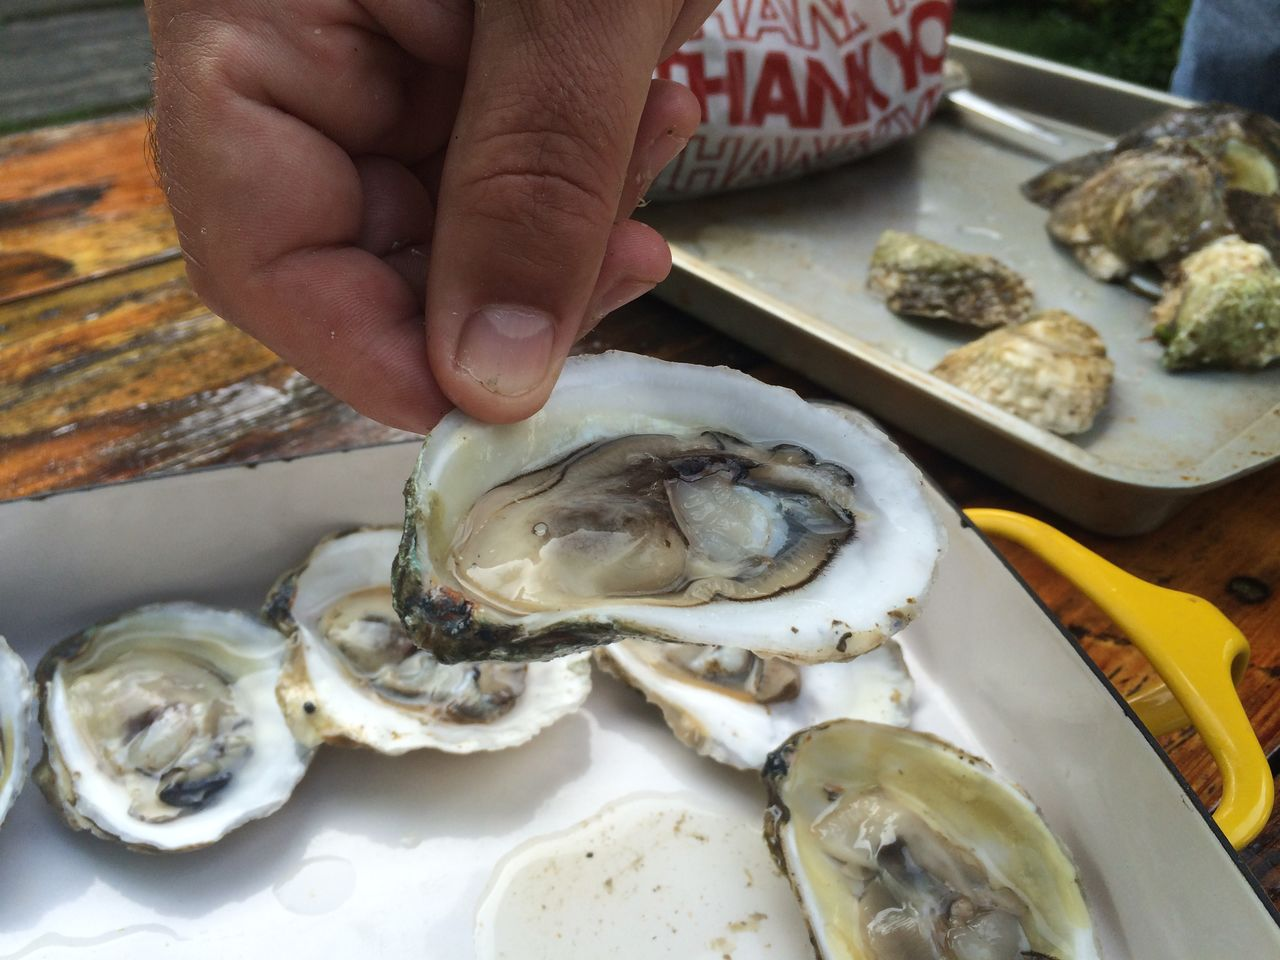 Close-up of cropped hand holding oyster